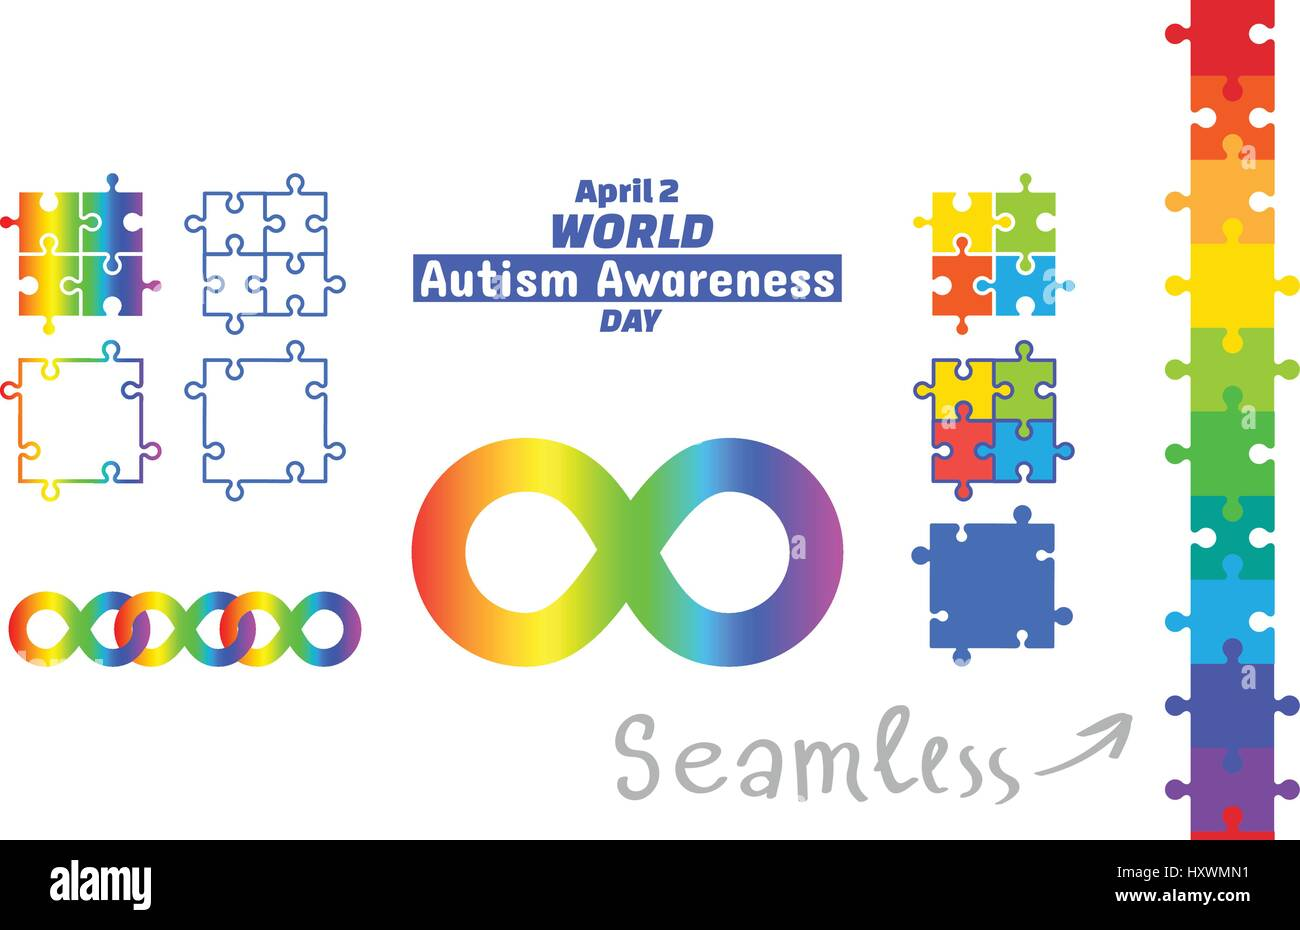 World autism awareness day april 2 set of design elements world autism awareness day april 2 set of design elements rainbow color of seamless borders frames puzzle pieces and infinity symbol means divers biocorpaavc